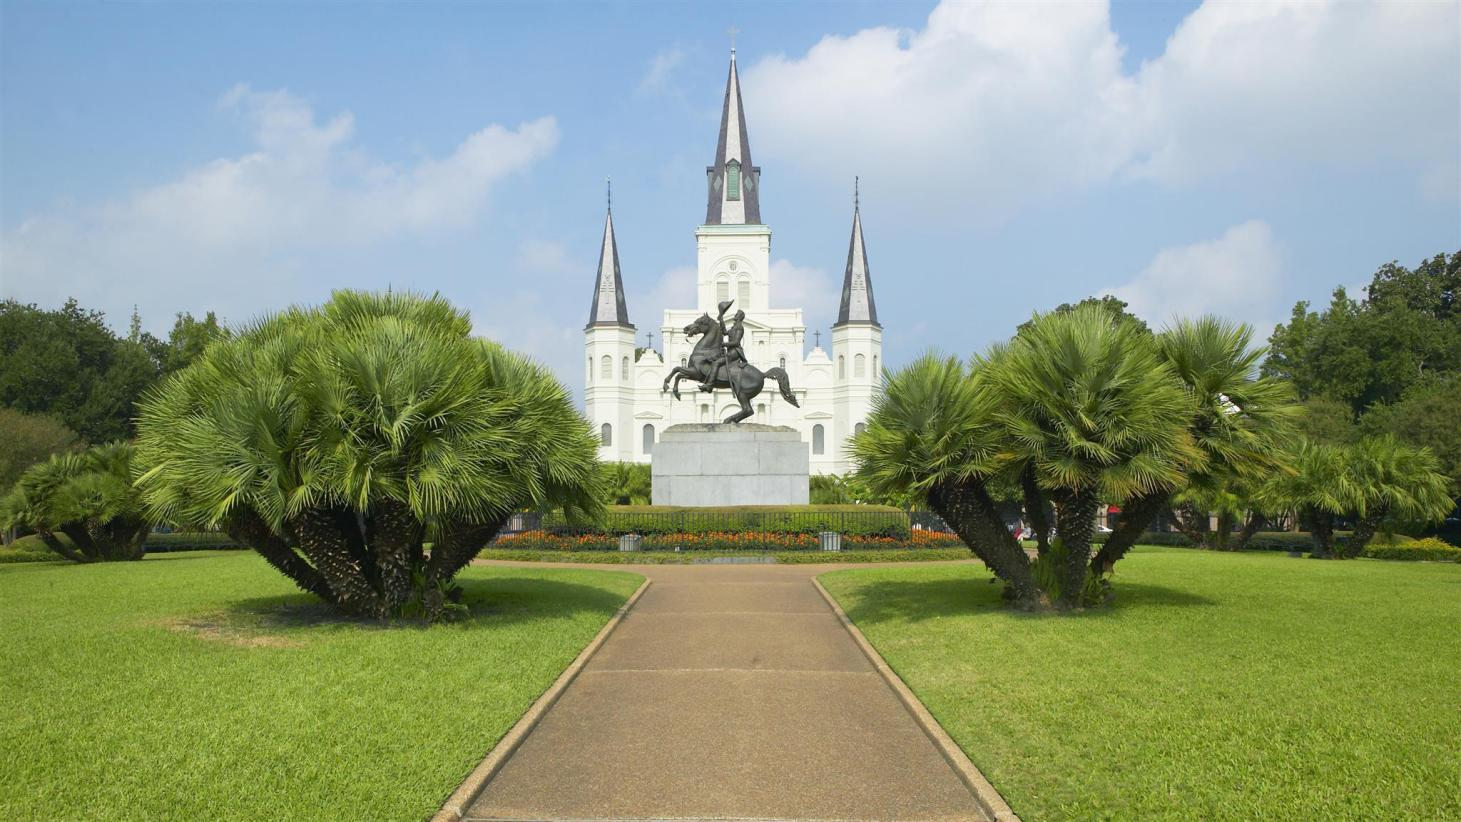 30 Best New Orleans La Hotels Free Cancellation 2021 Price Lists Reviews Of The Best Hotels In New Orleans La United States